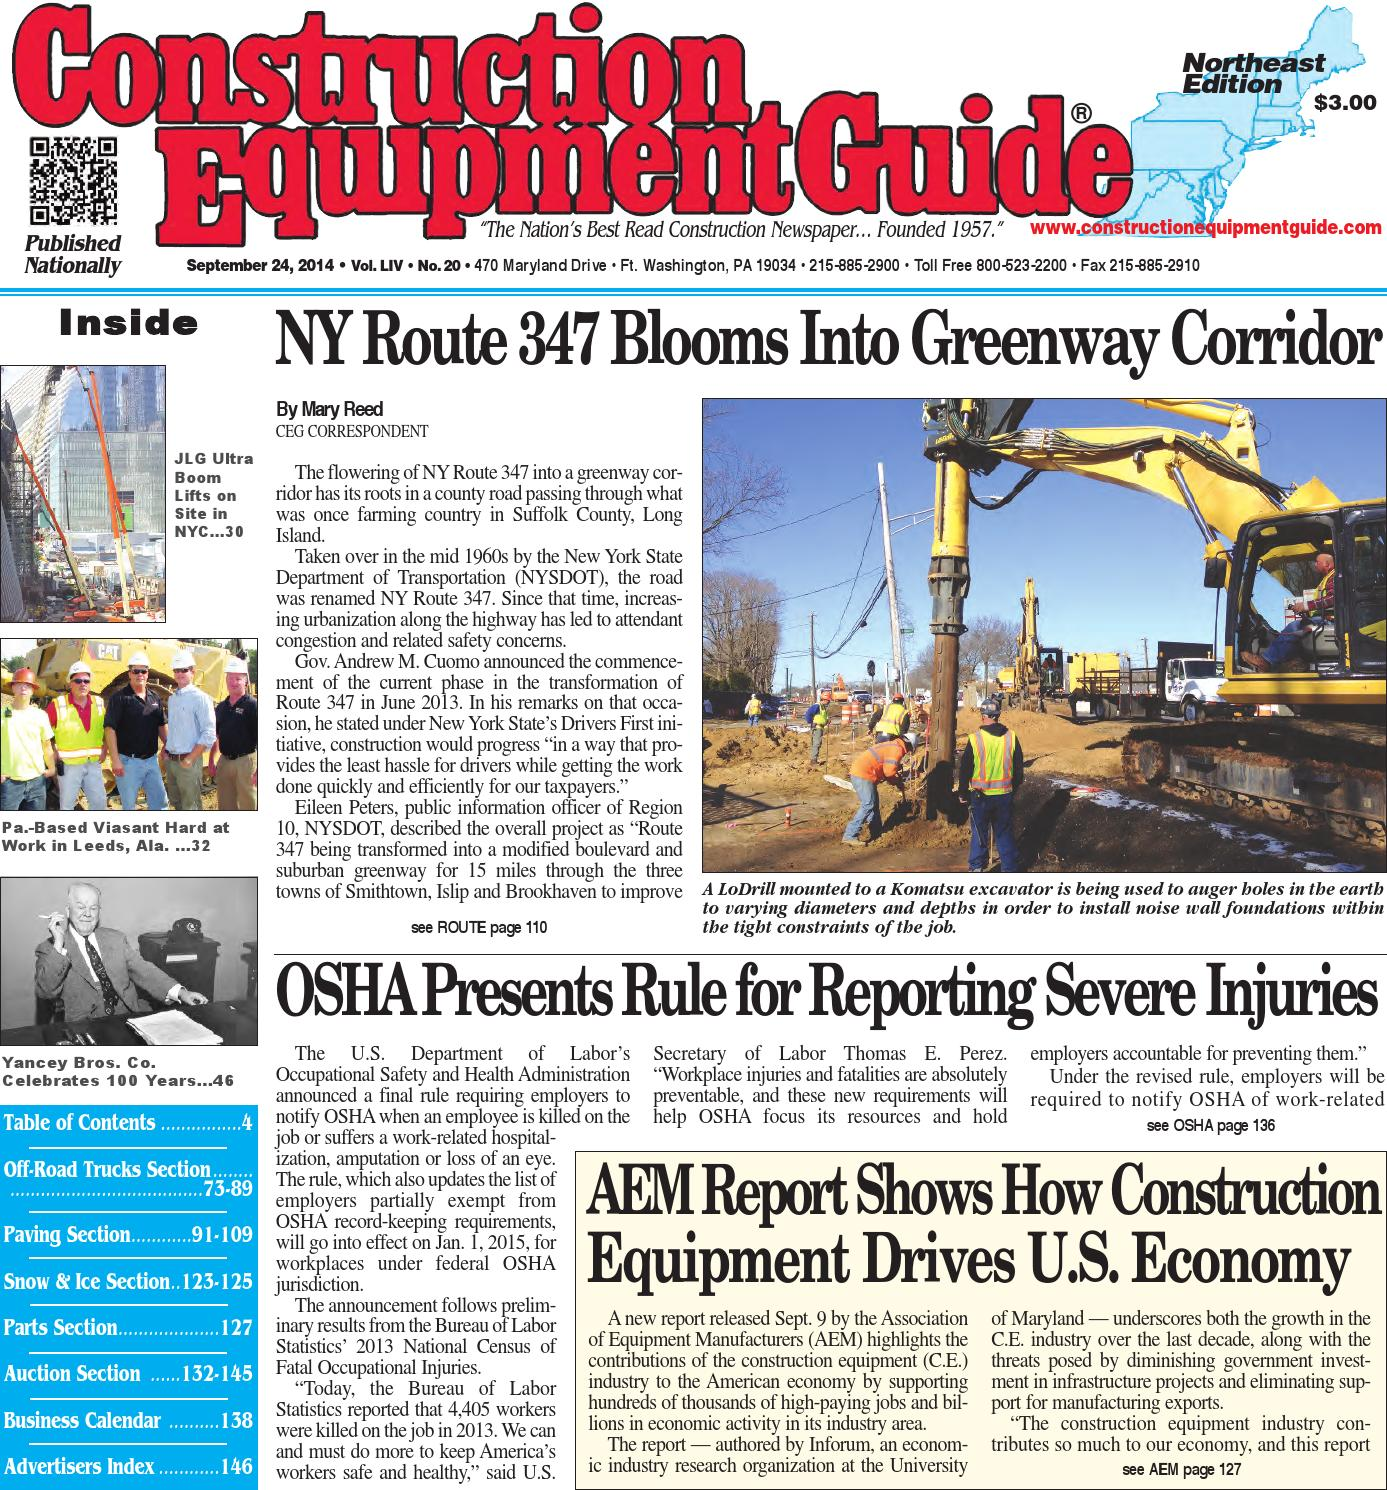 Northeast 20 2014 By Construction Equipment Guide Issuu Wiring Diagram Kubota B26 Tlb